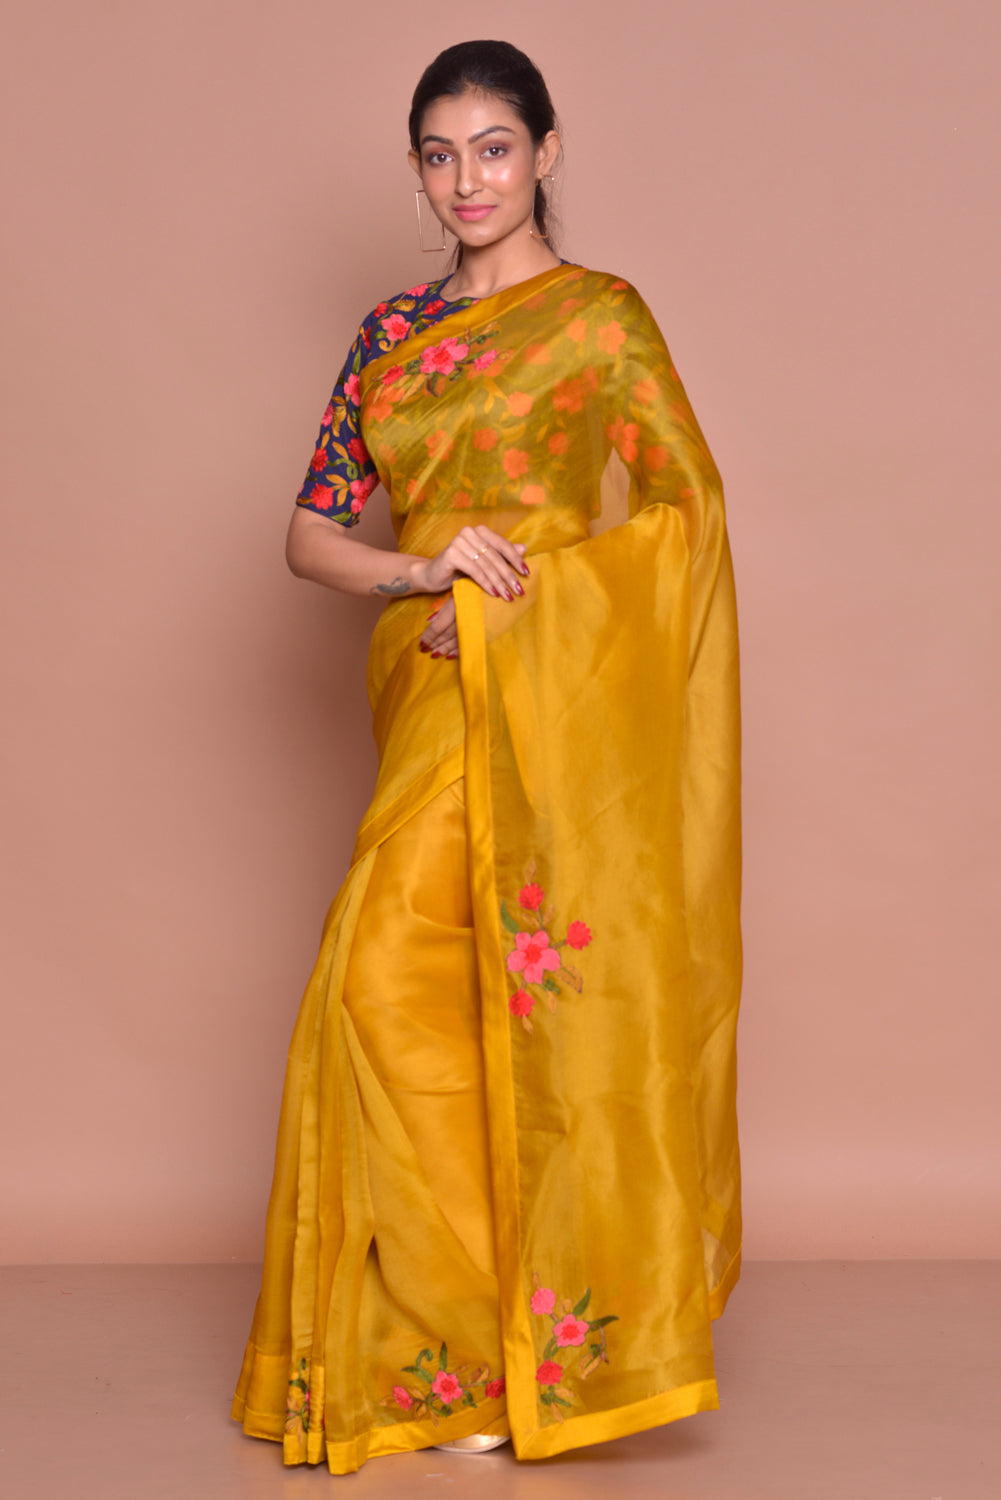 Buy beautiful mustard embroidered organza saree online in USA with blue floral saree blouse. Set ethnic fashion goals with exquisite silk sarees with blouse, Banarasi sarees, Kanchipuram saris from Pure Elegance Indian luxury clothing store in USA.-side